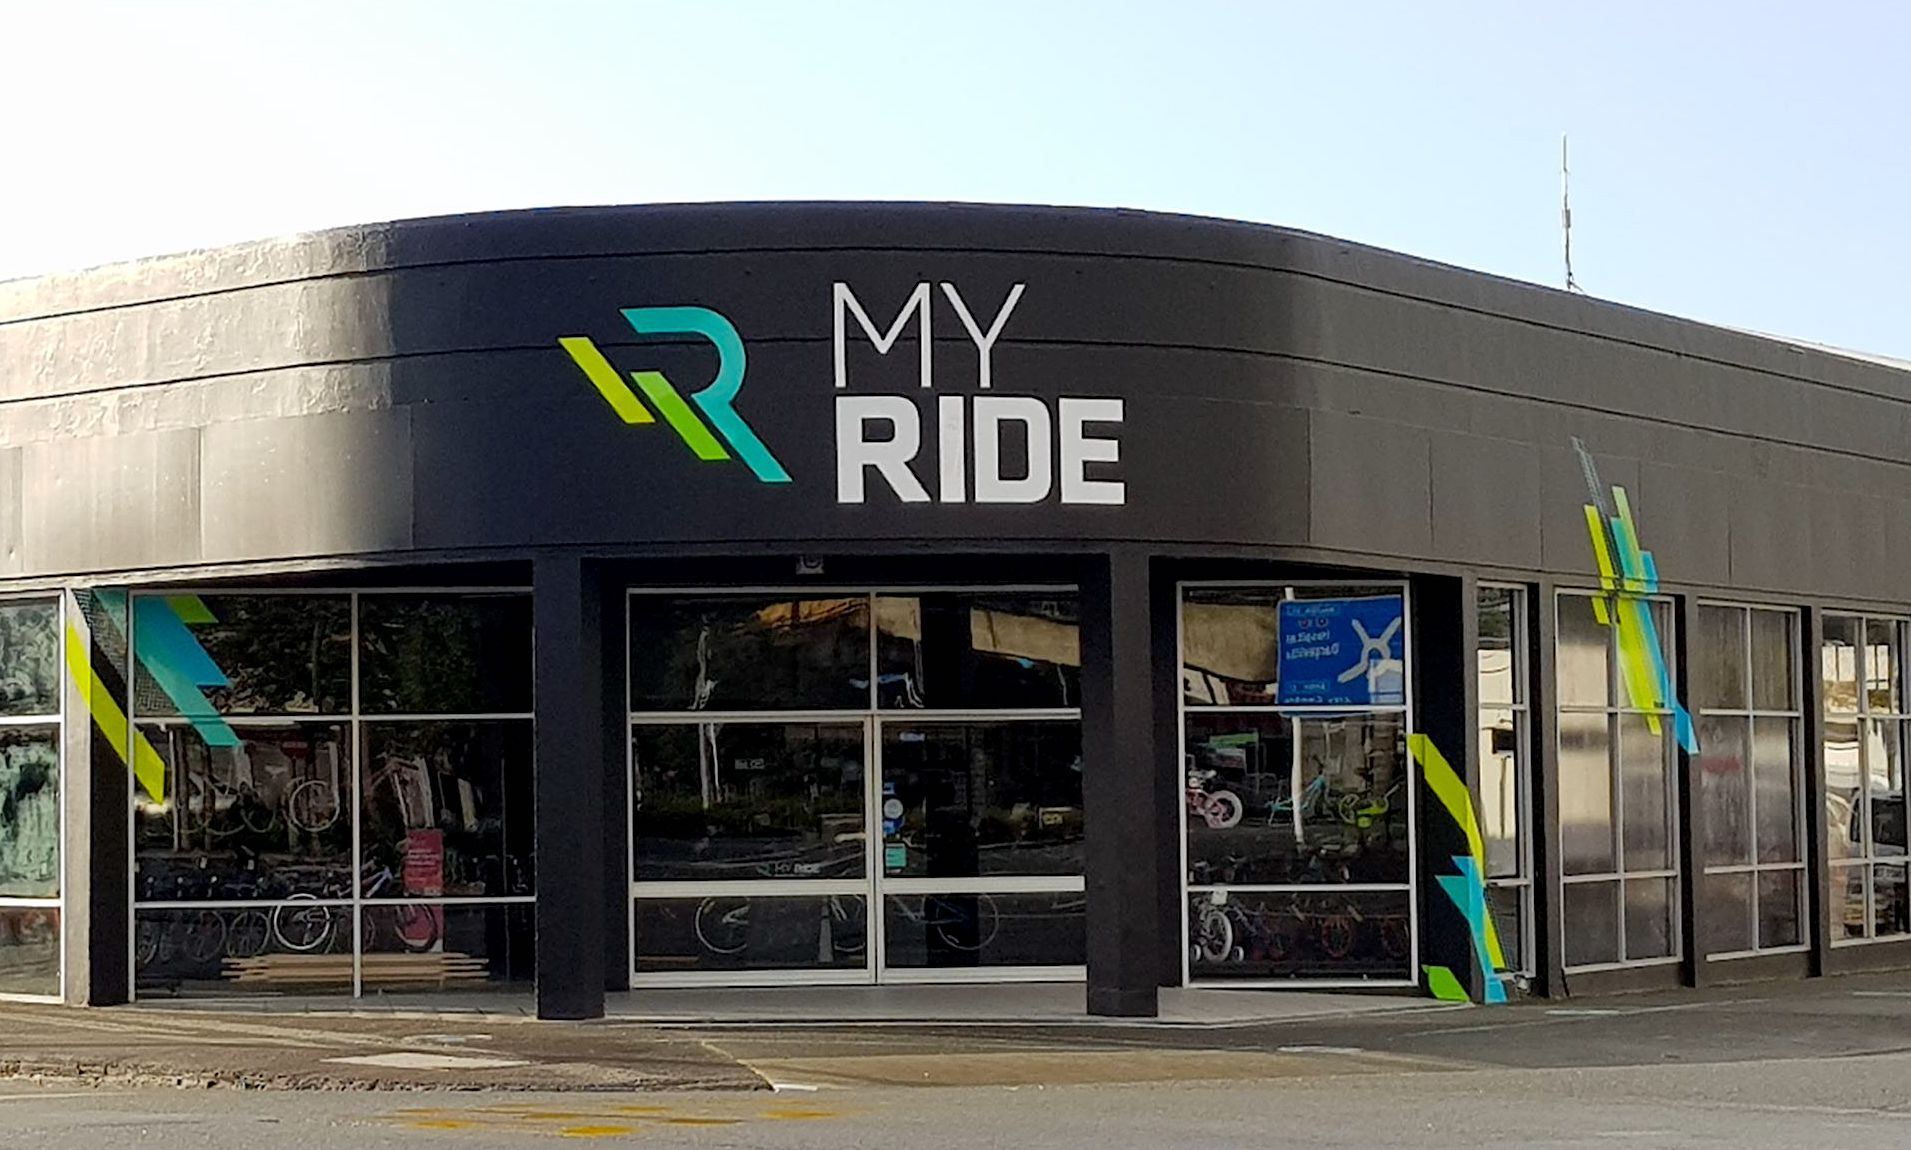 The facade of My Ride store